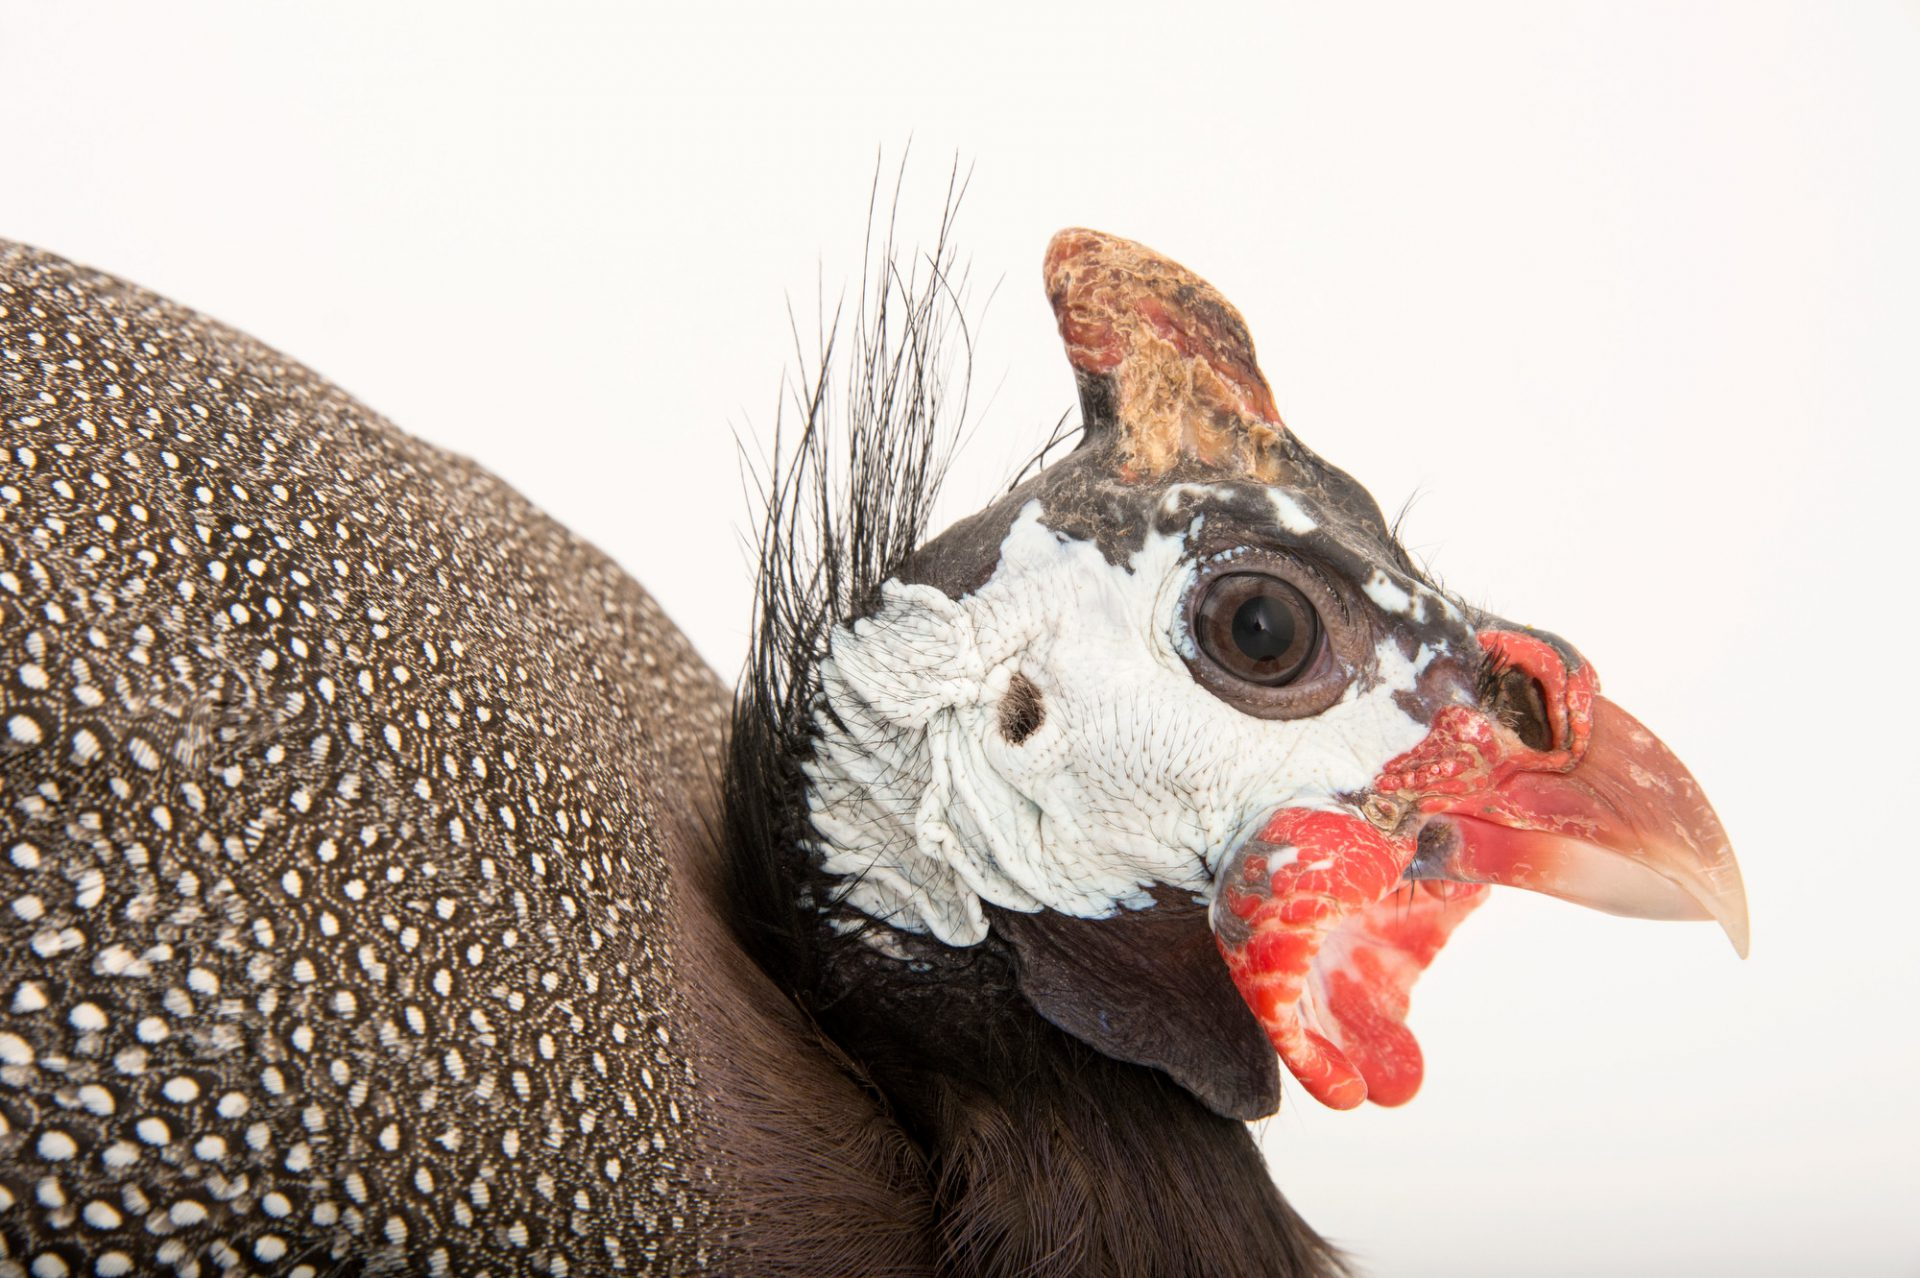 Photo: A helmeted guineafowl (Numida meleagris galeata) in Des Moines, Iowa.